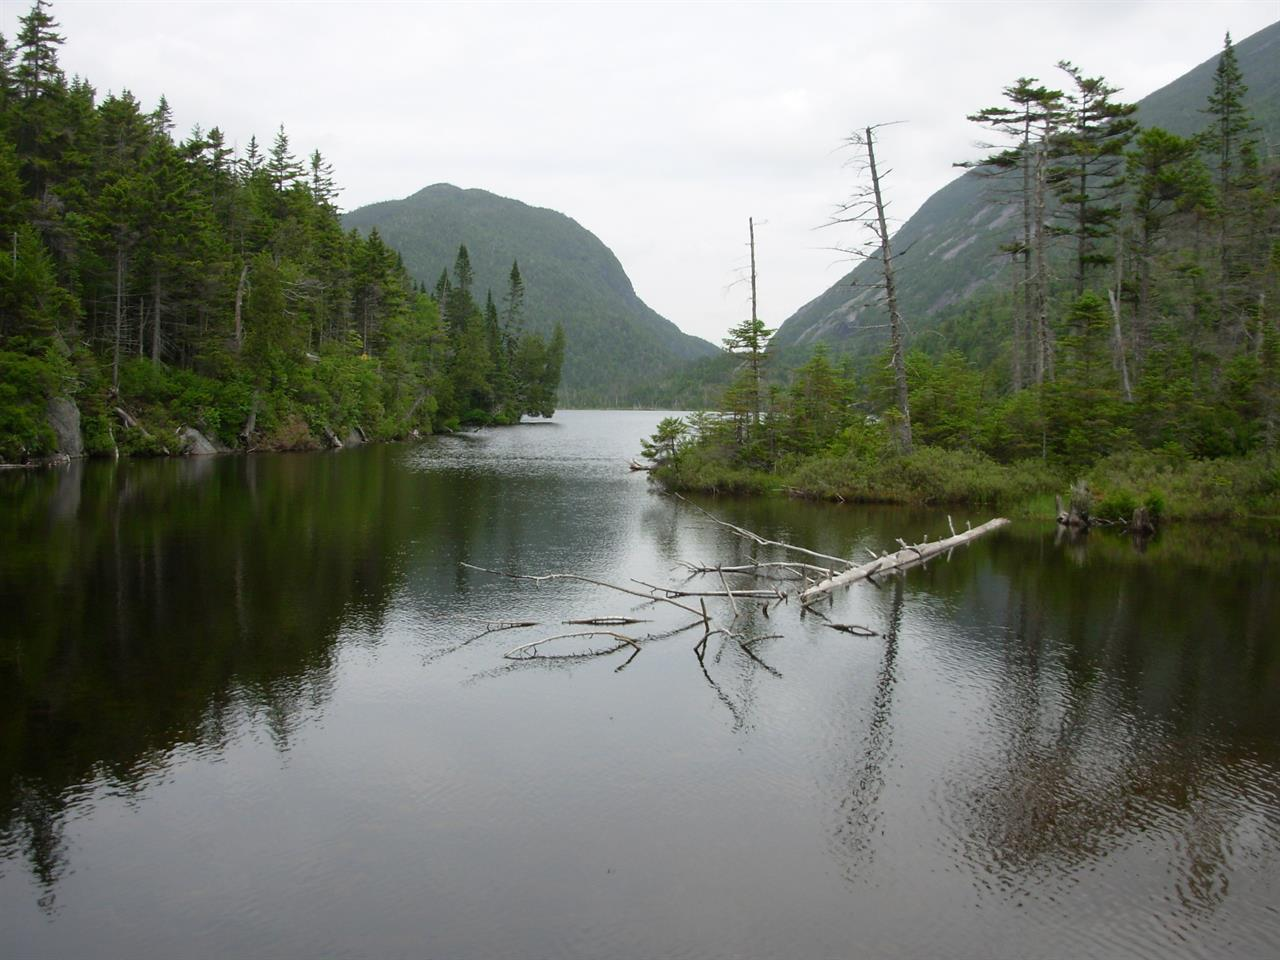 Trout found in Adirondack lake once soured by acid rain